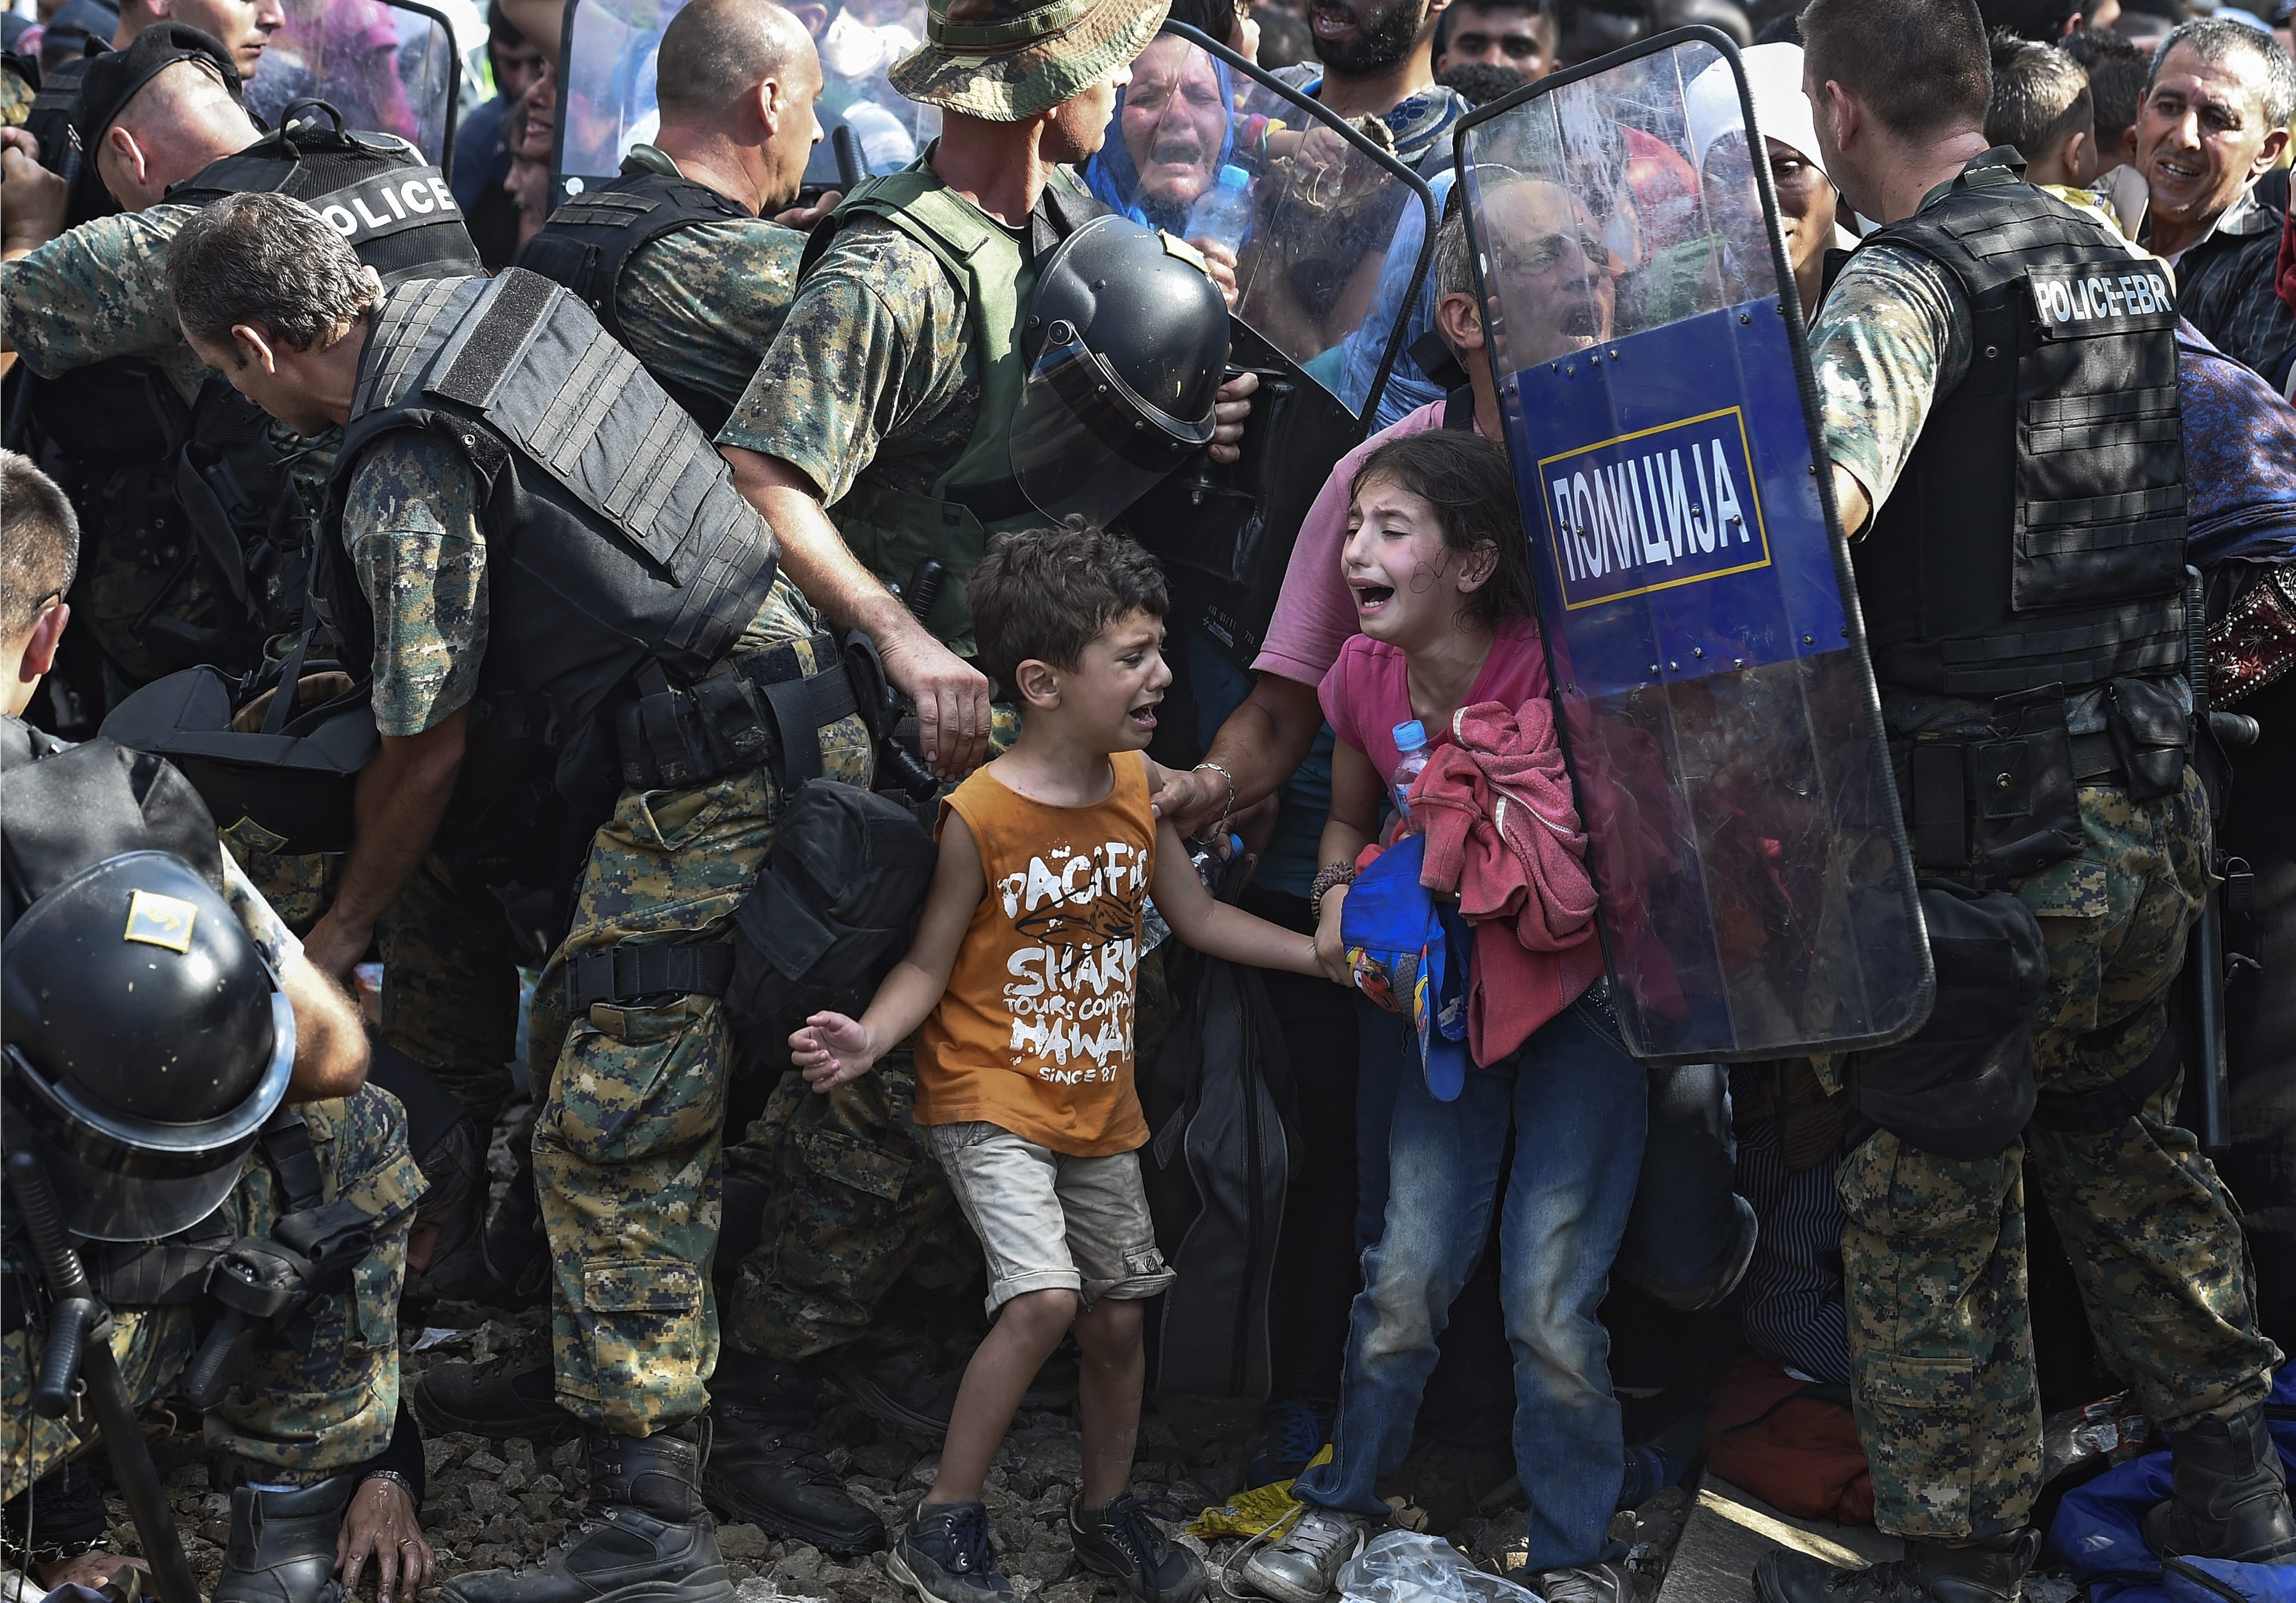 Children cry as migrants waiting on the Greek side of the border break through a cordon of Macedonian special police forces to cross into Macedonia, near the southern city of Gevgelija, The Former Yugoslav Republic of Macedonia on Aug. 21, 2015. Macedonian police clashed with thousands of migrants attempting to break into the country after being stranded in no-man's land overnight, marking an escalation of the European refugee crisis for the Balkan country.